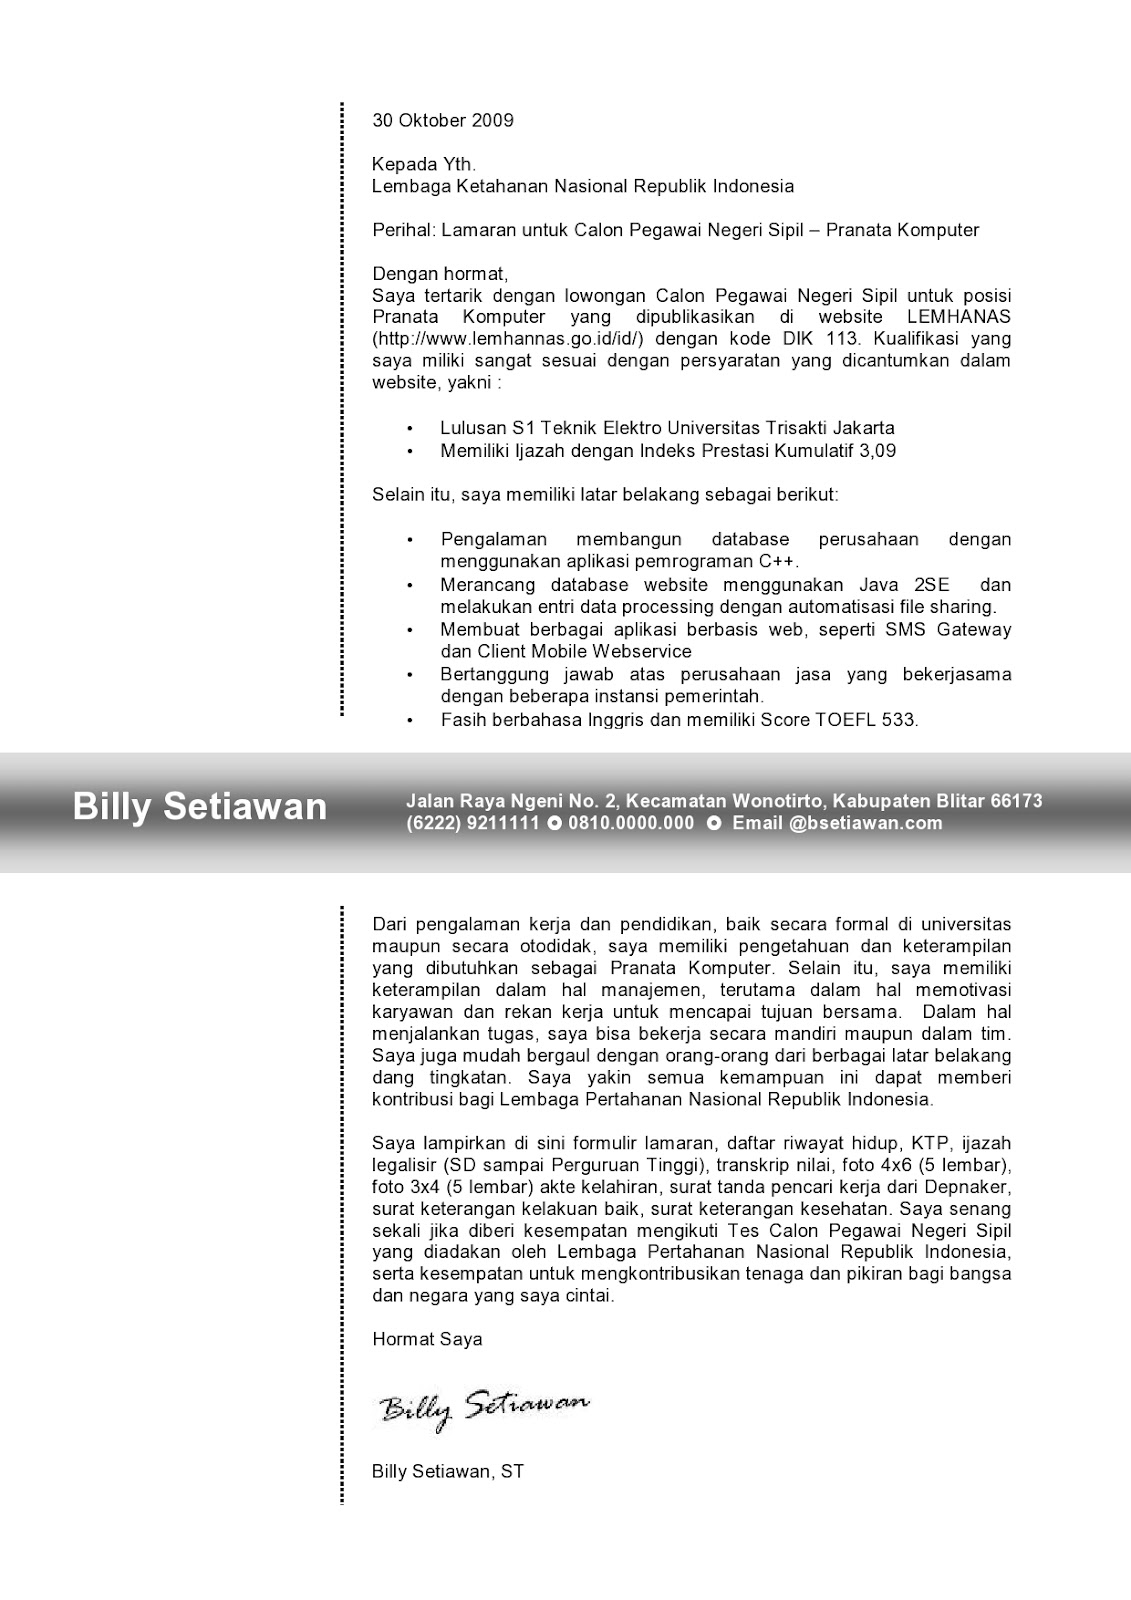 staff accountant cover letter essay speech format teacher sample cover letter for staff accountant attached resume cover letter tf 02 cover letter for staff accountant